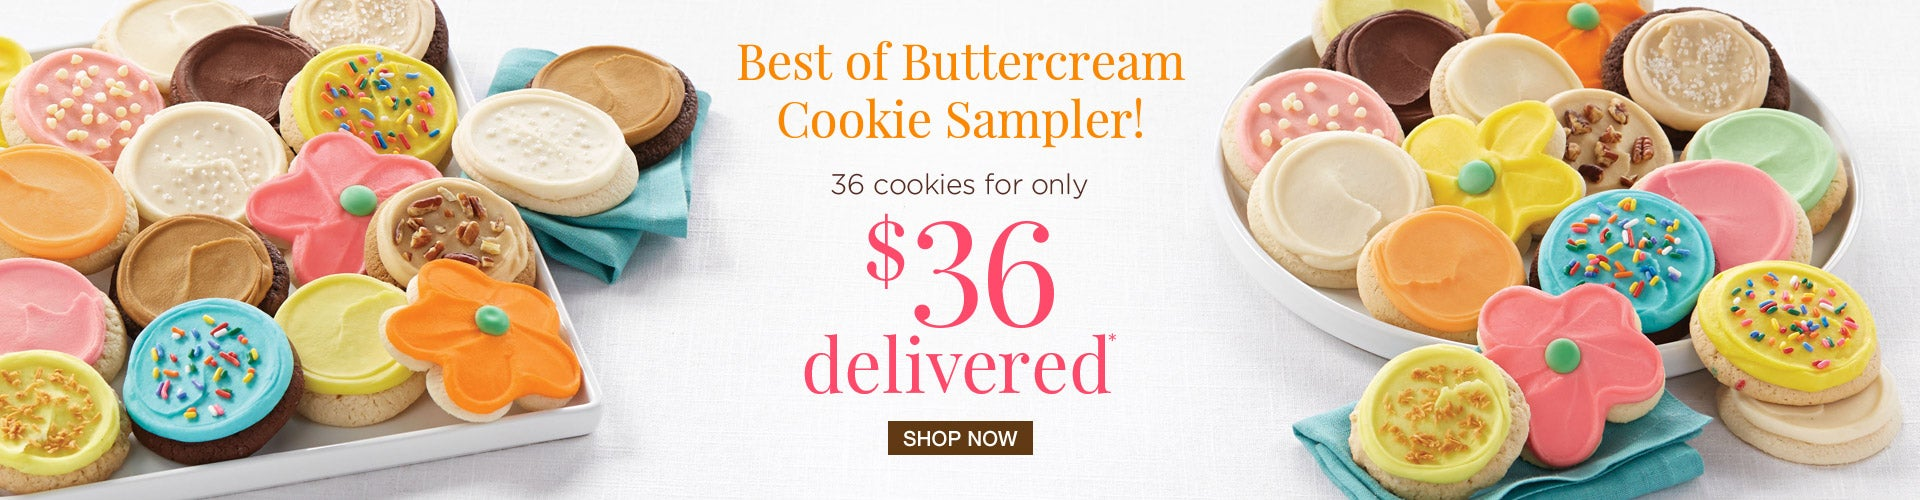 Best of Buttercream Summer Sampler